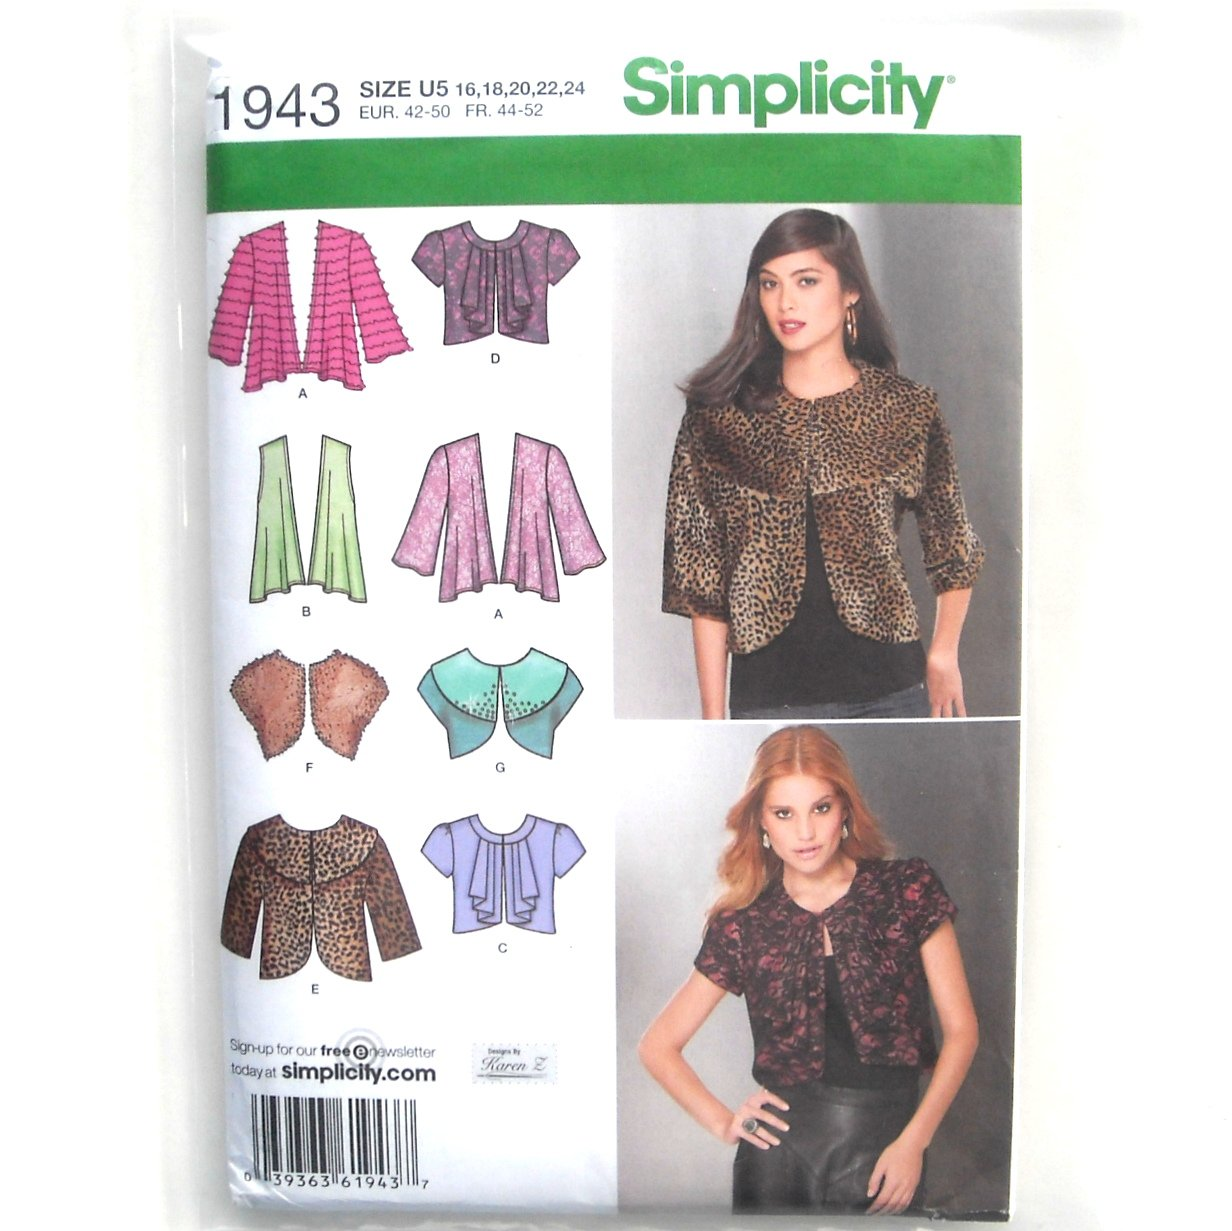 Misses Womens Jackets 16 - 24 Karen Z Designs Simplicity Sewing Pattern 1943